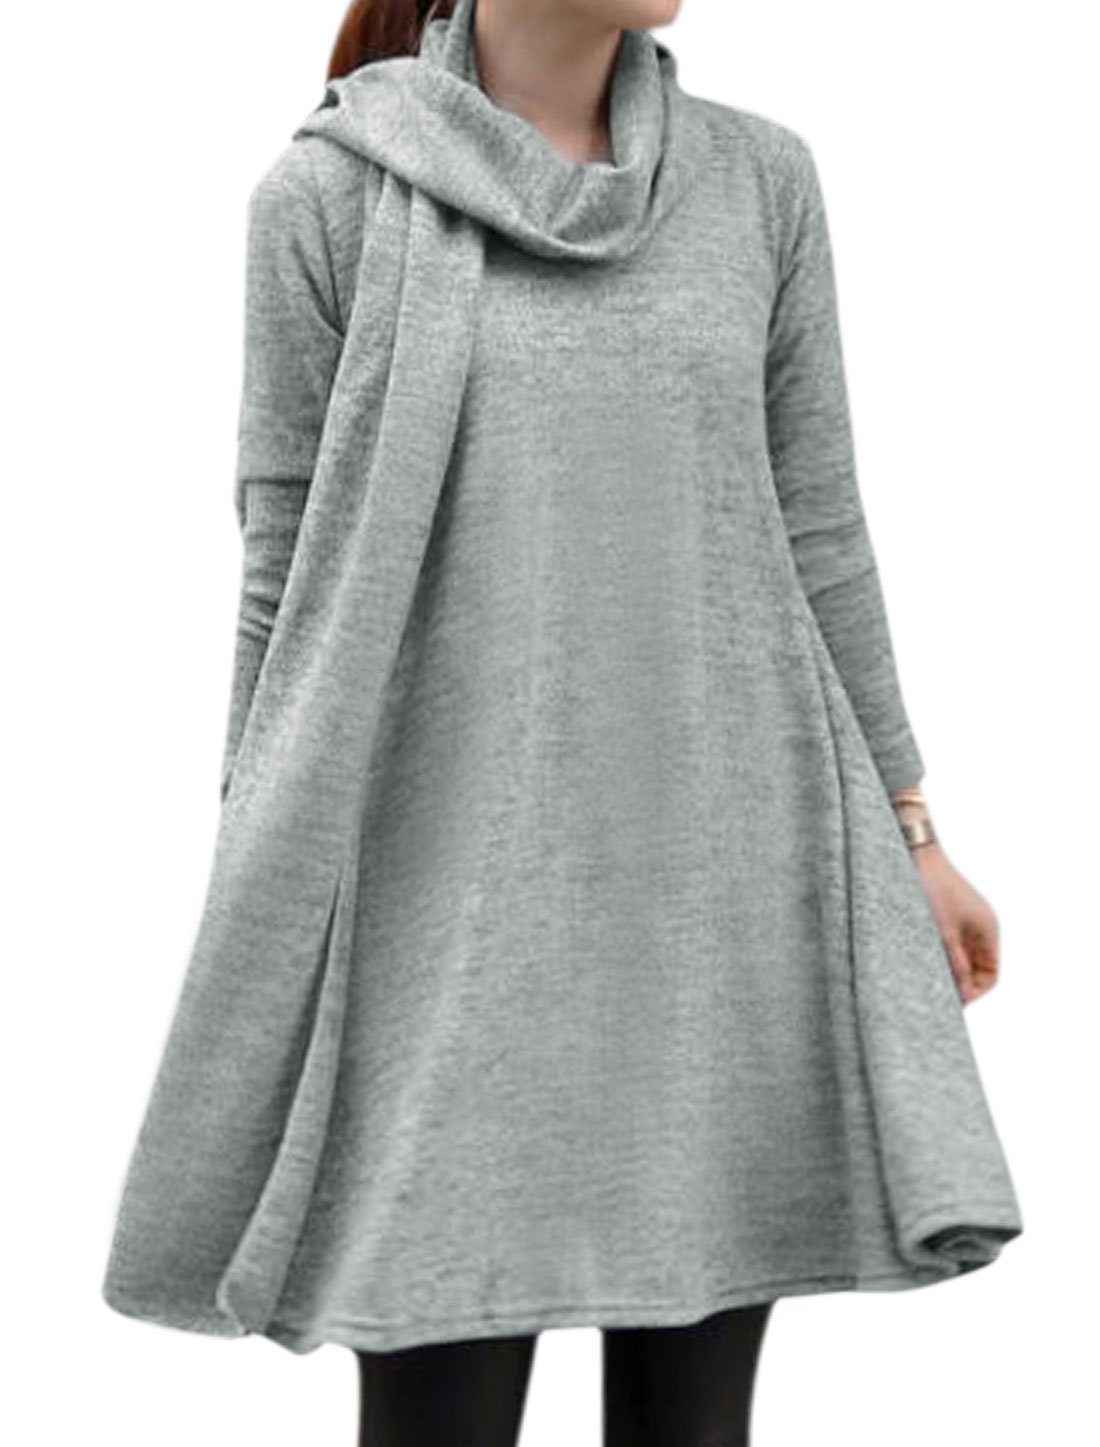 Women Round Neck Long Sleeves A Line Dress w Scarf Gray XS